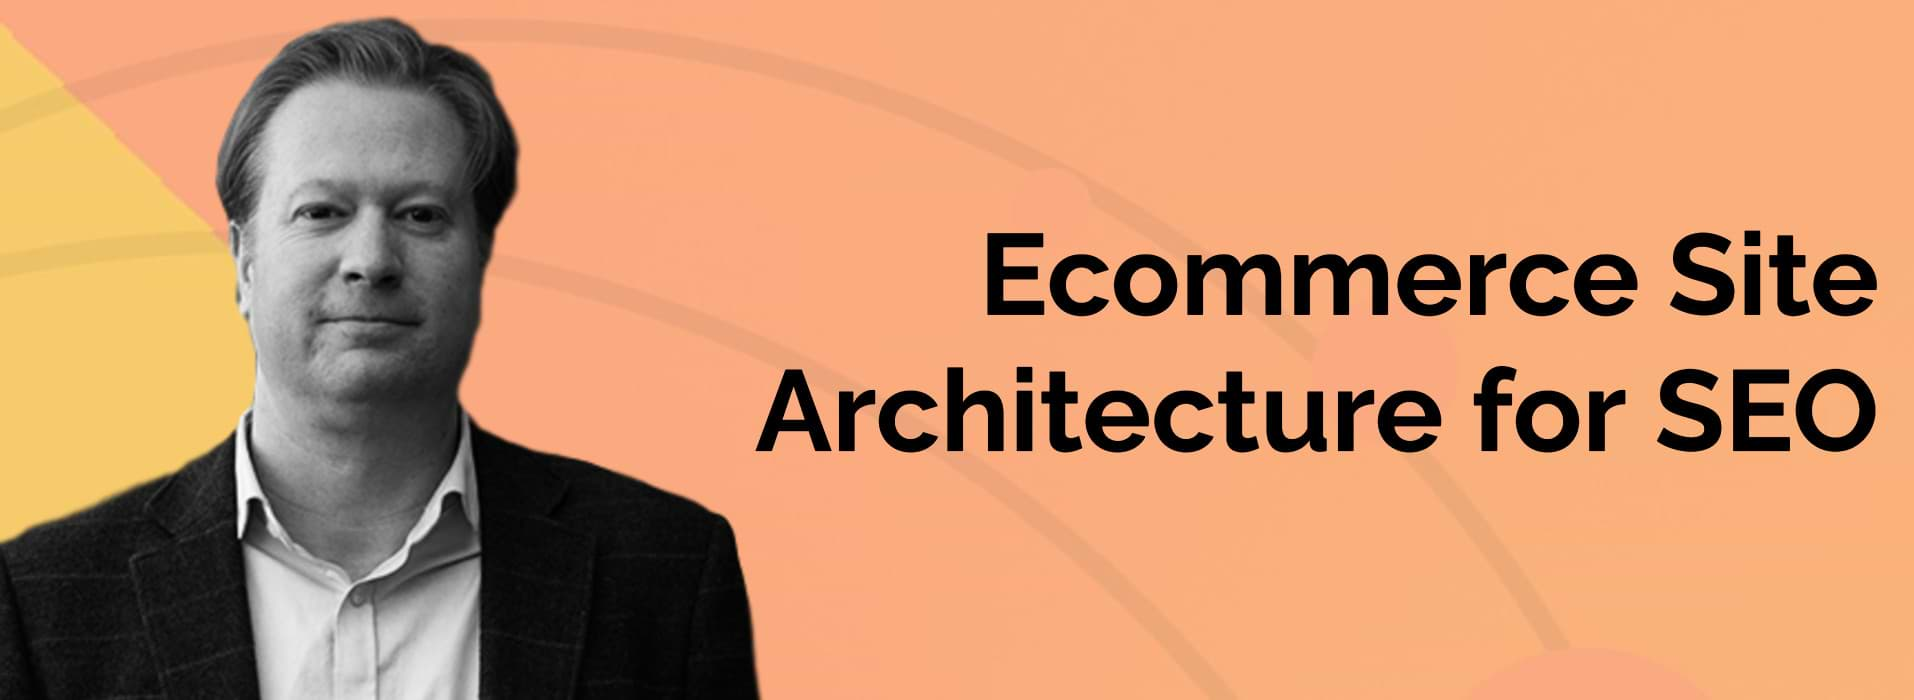 Ecommerce Site Architecture for SEO